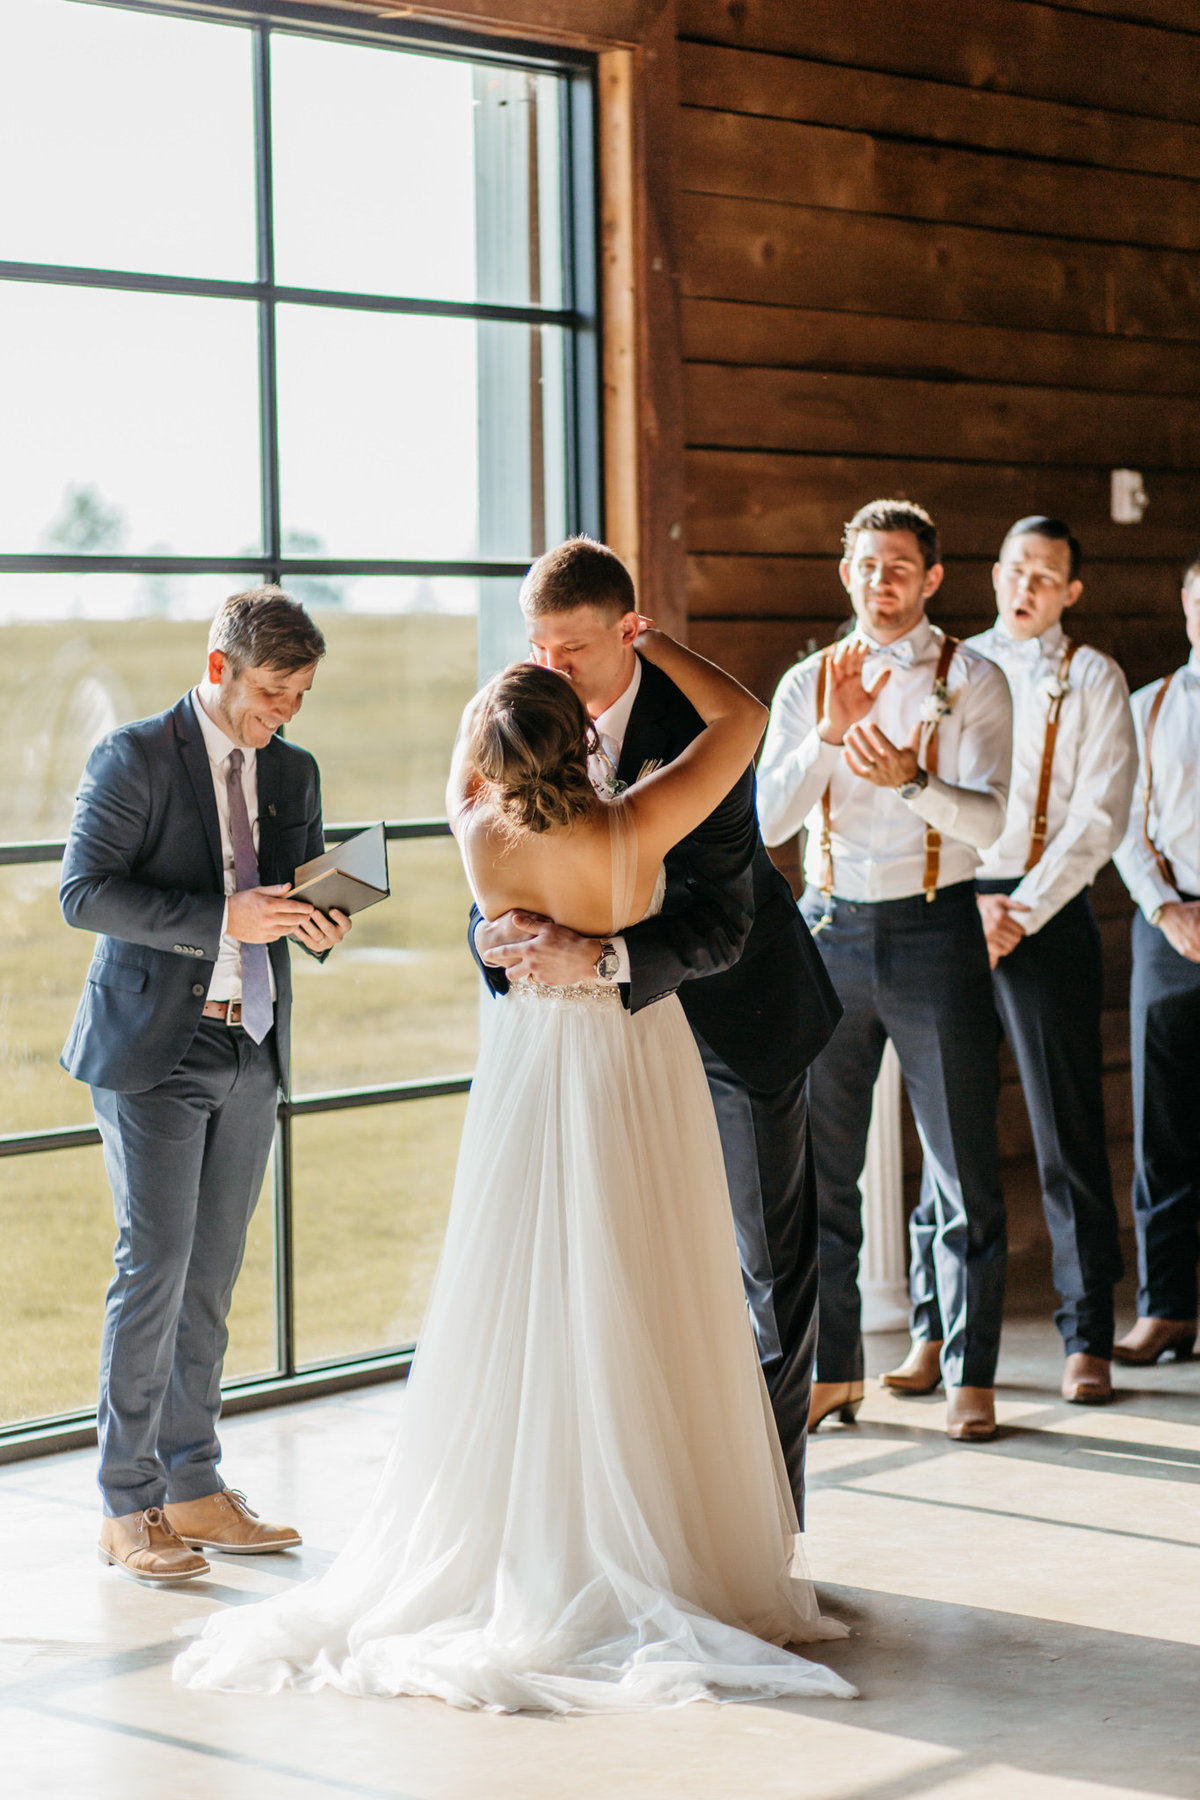 Alexa-Vossler-Photo_Dallas-Wedding-Photographer_North-Texas-Wedding-Photographer_Stephanie-Chase-Wedding-at-Morgan-Creek-Barn-Aubrey-Texas_104